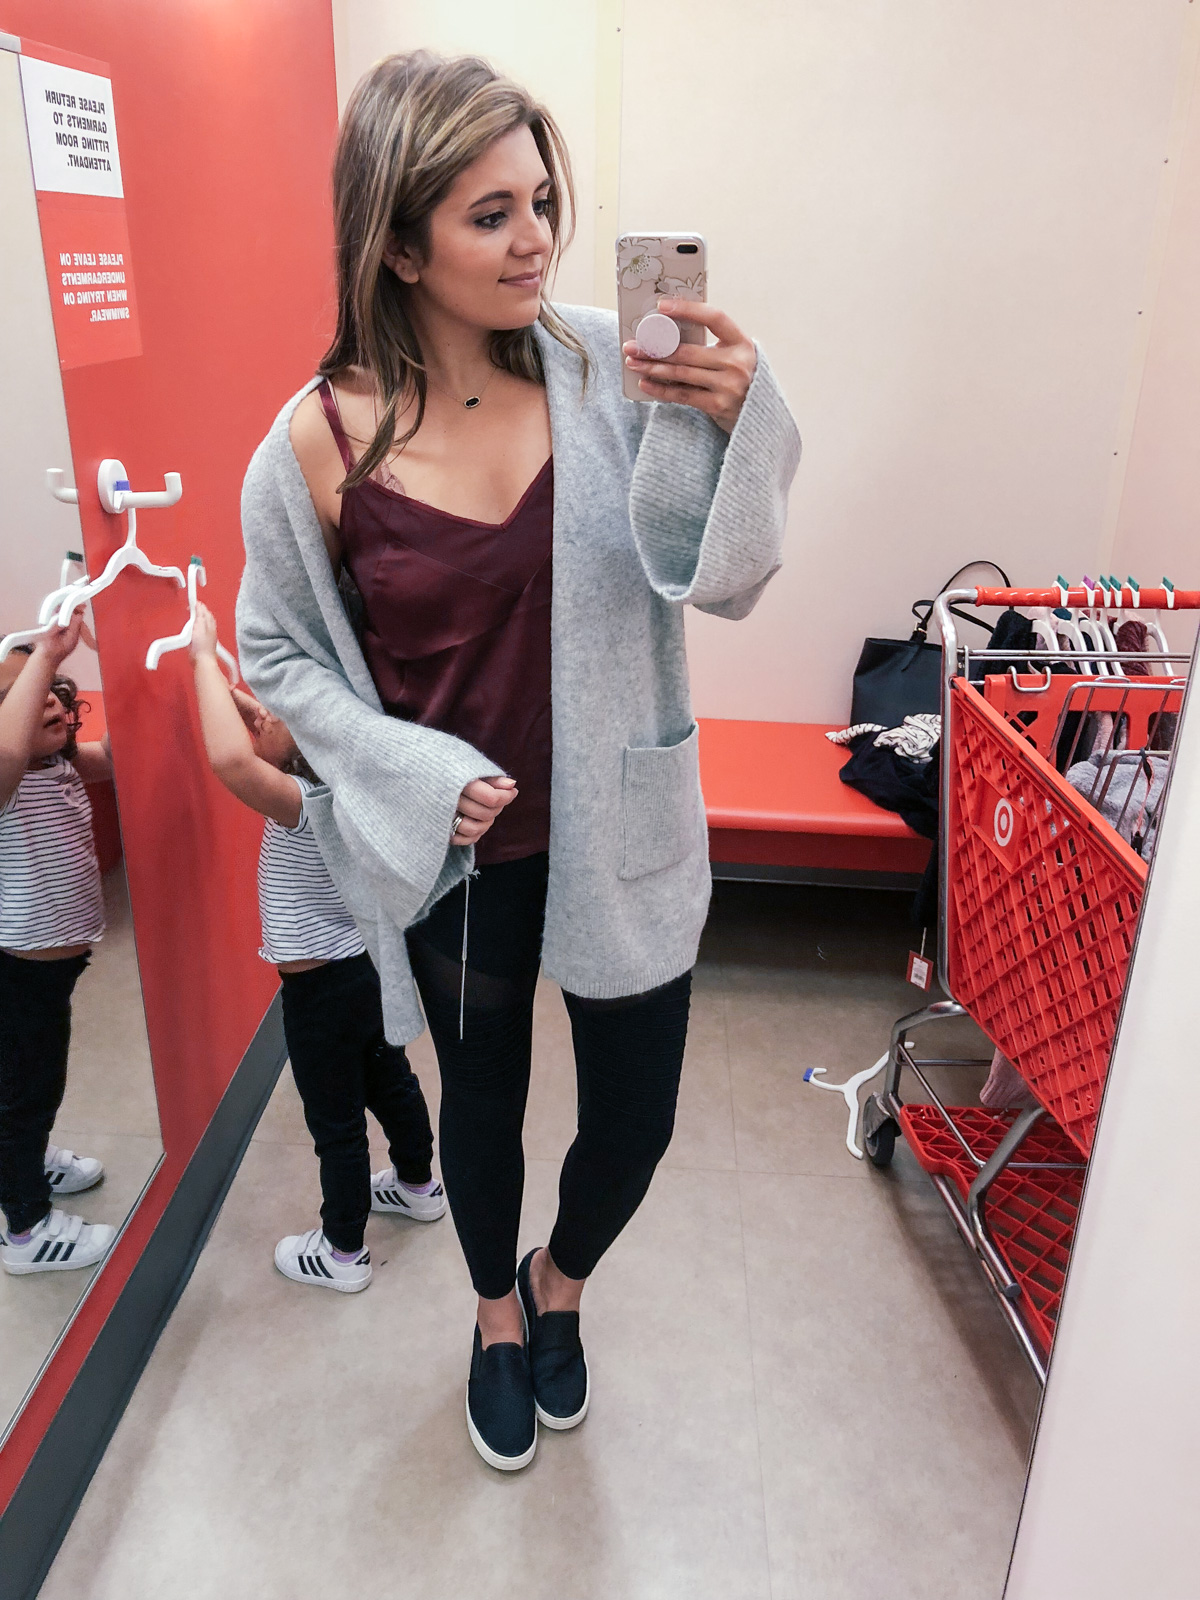 dressing room target - target clothing reviews | For more dressing room reviews, check out bylaurenm.com!